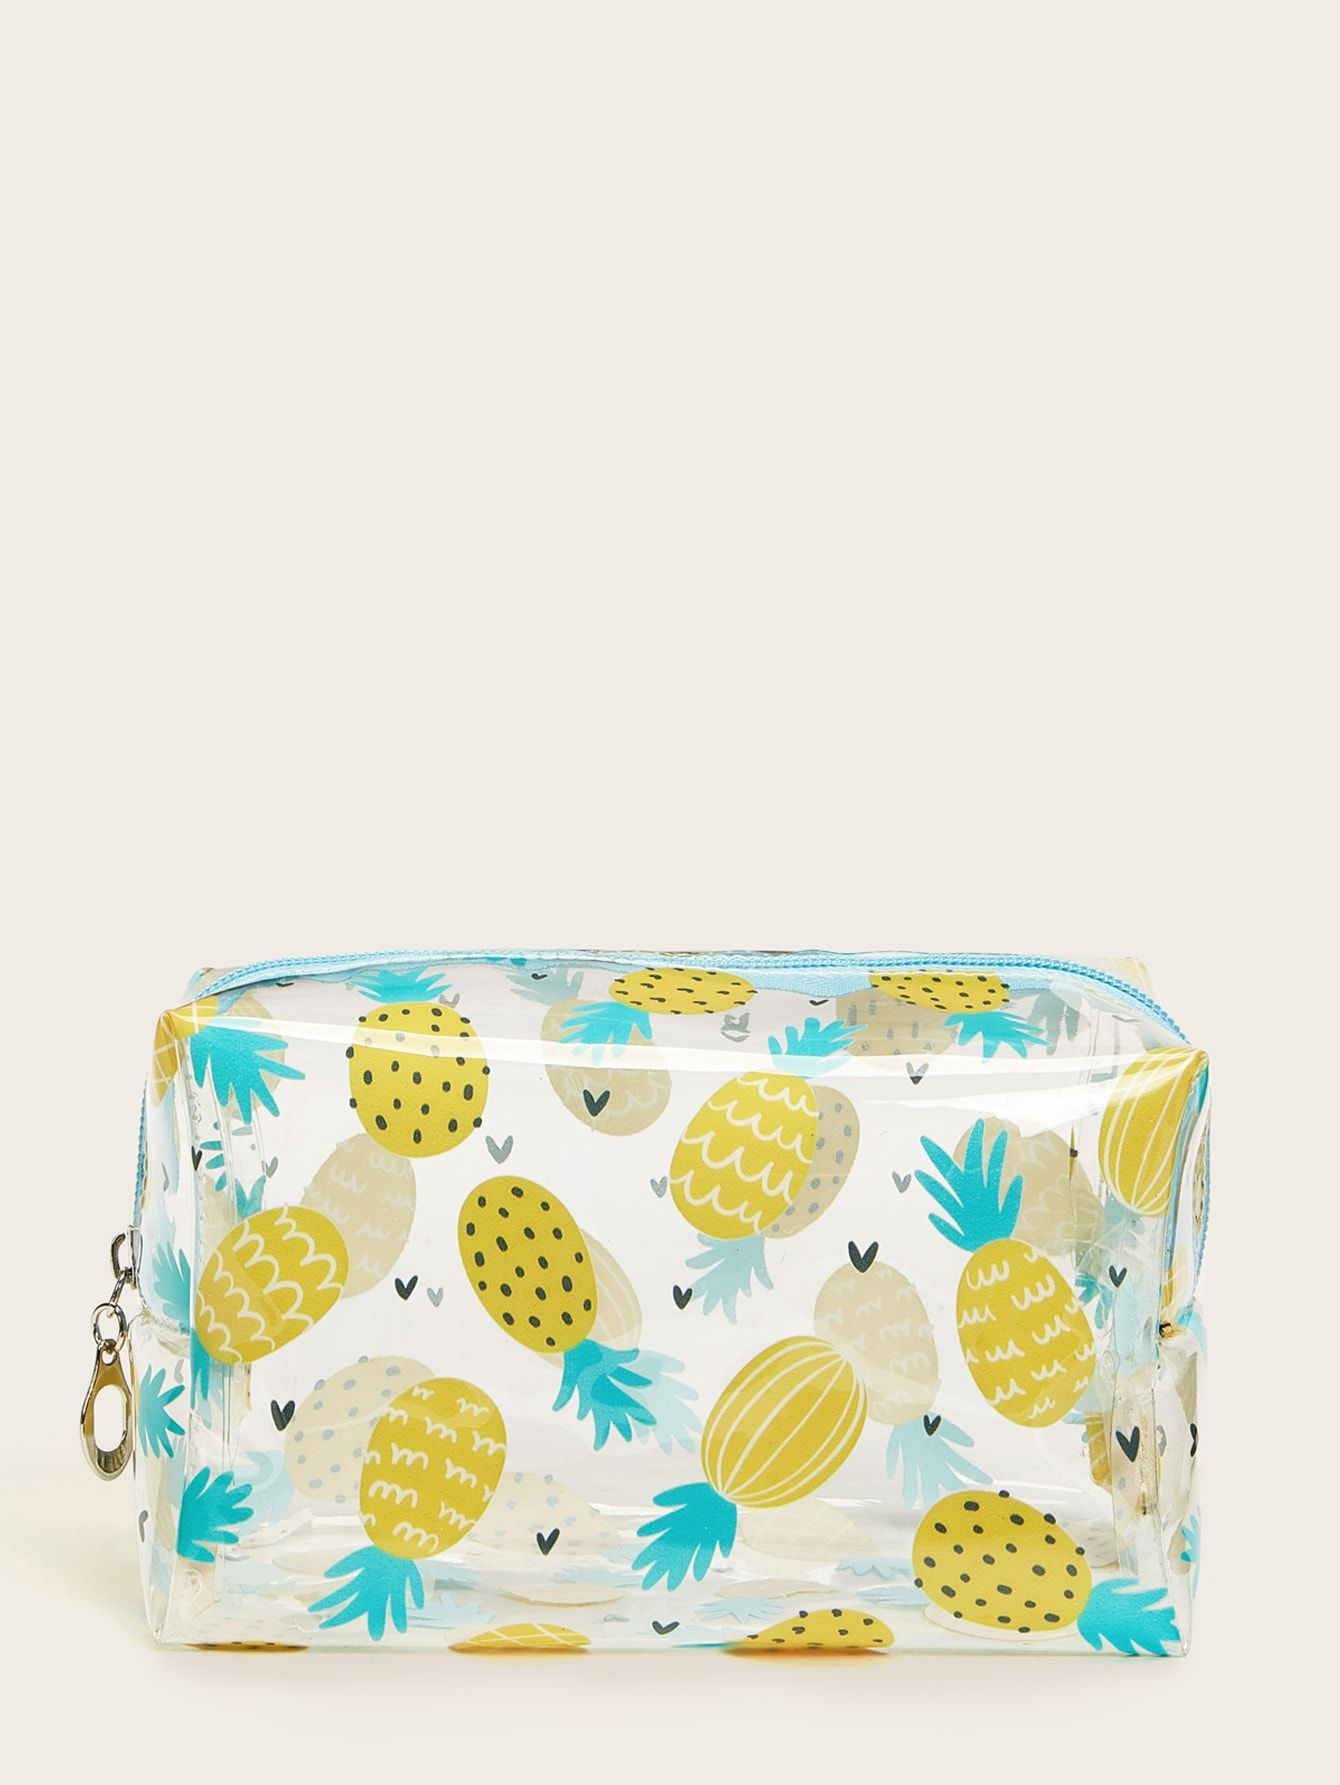 Pineapple Pattern Transparent Makeup Bag (With images